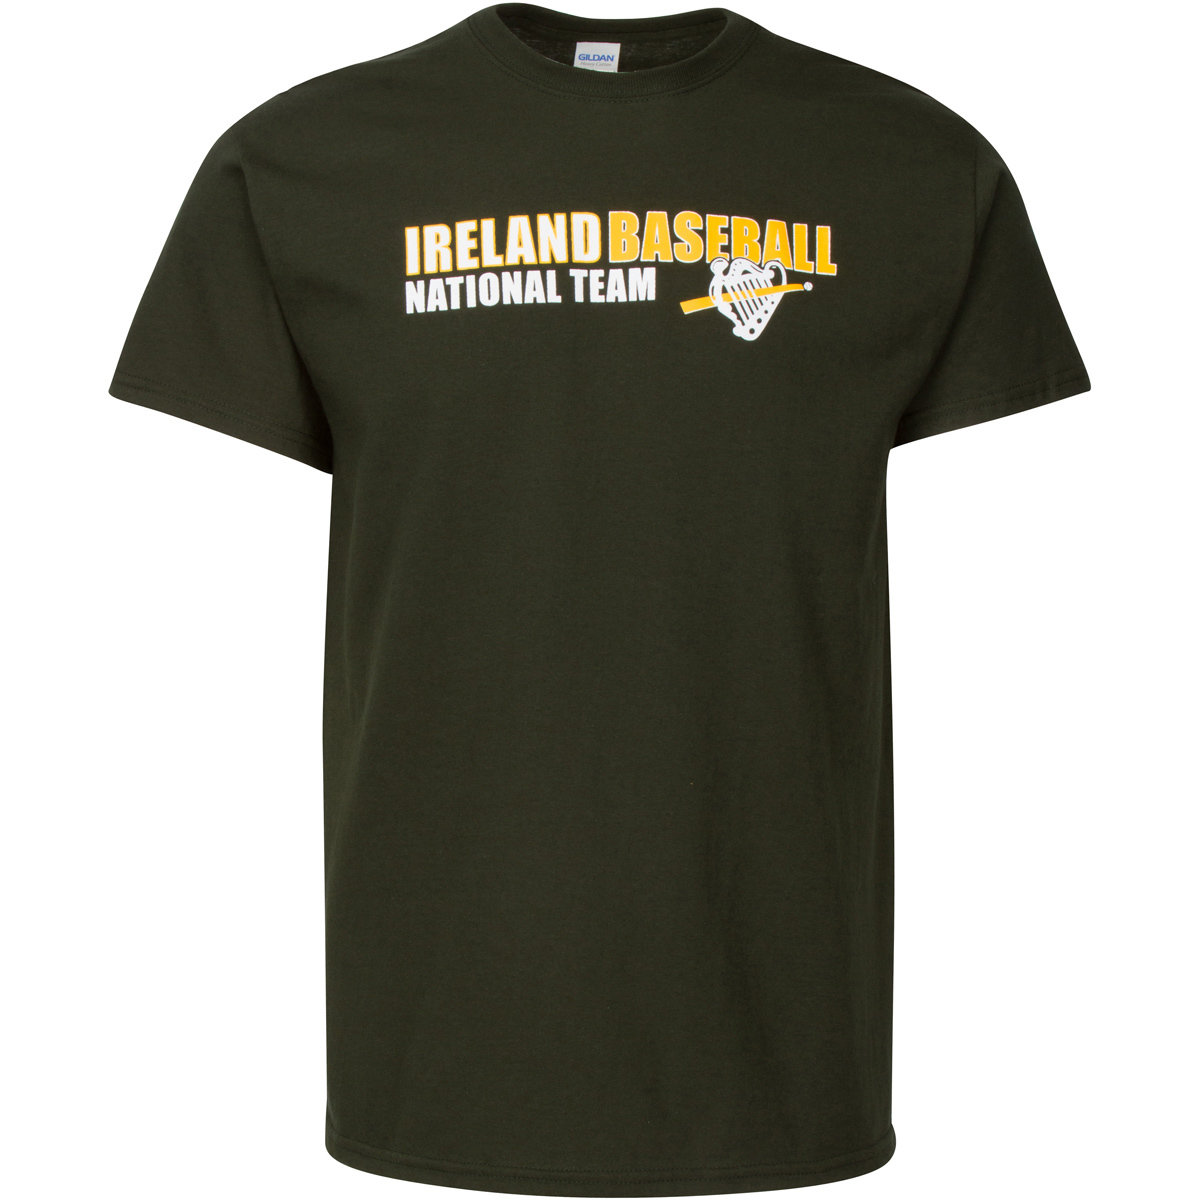 Ireland Baseball Dark Green T-shirt 00002